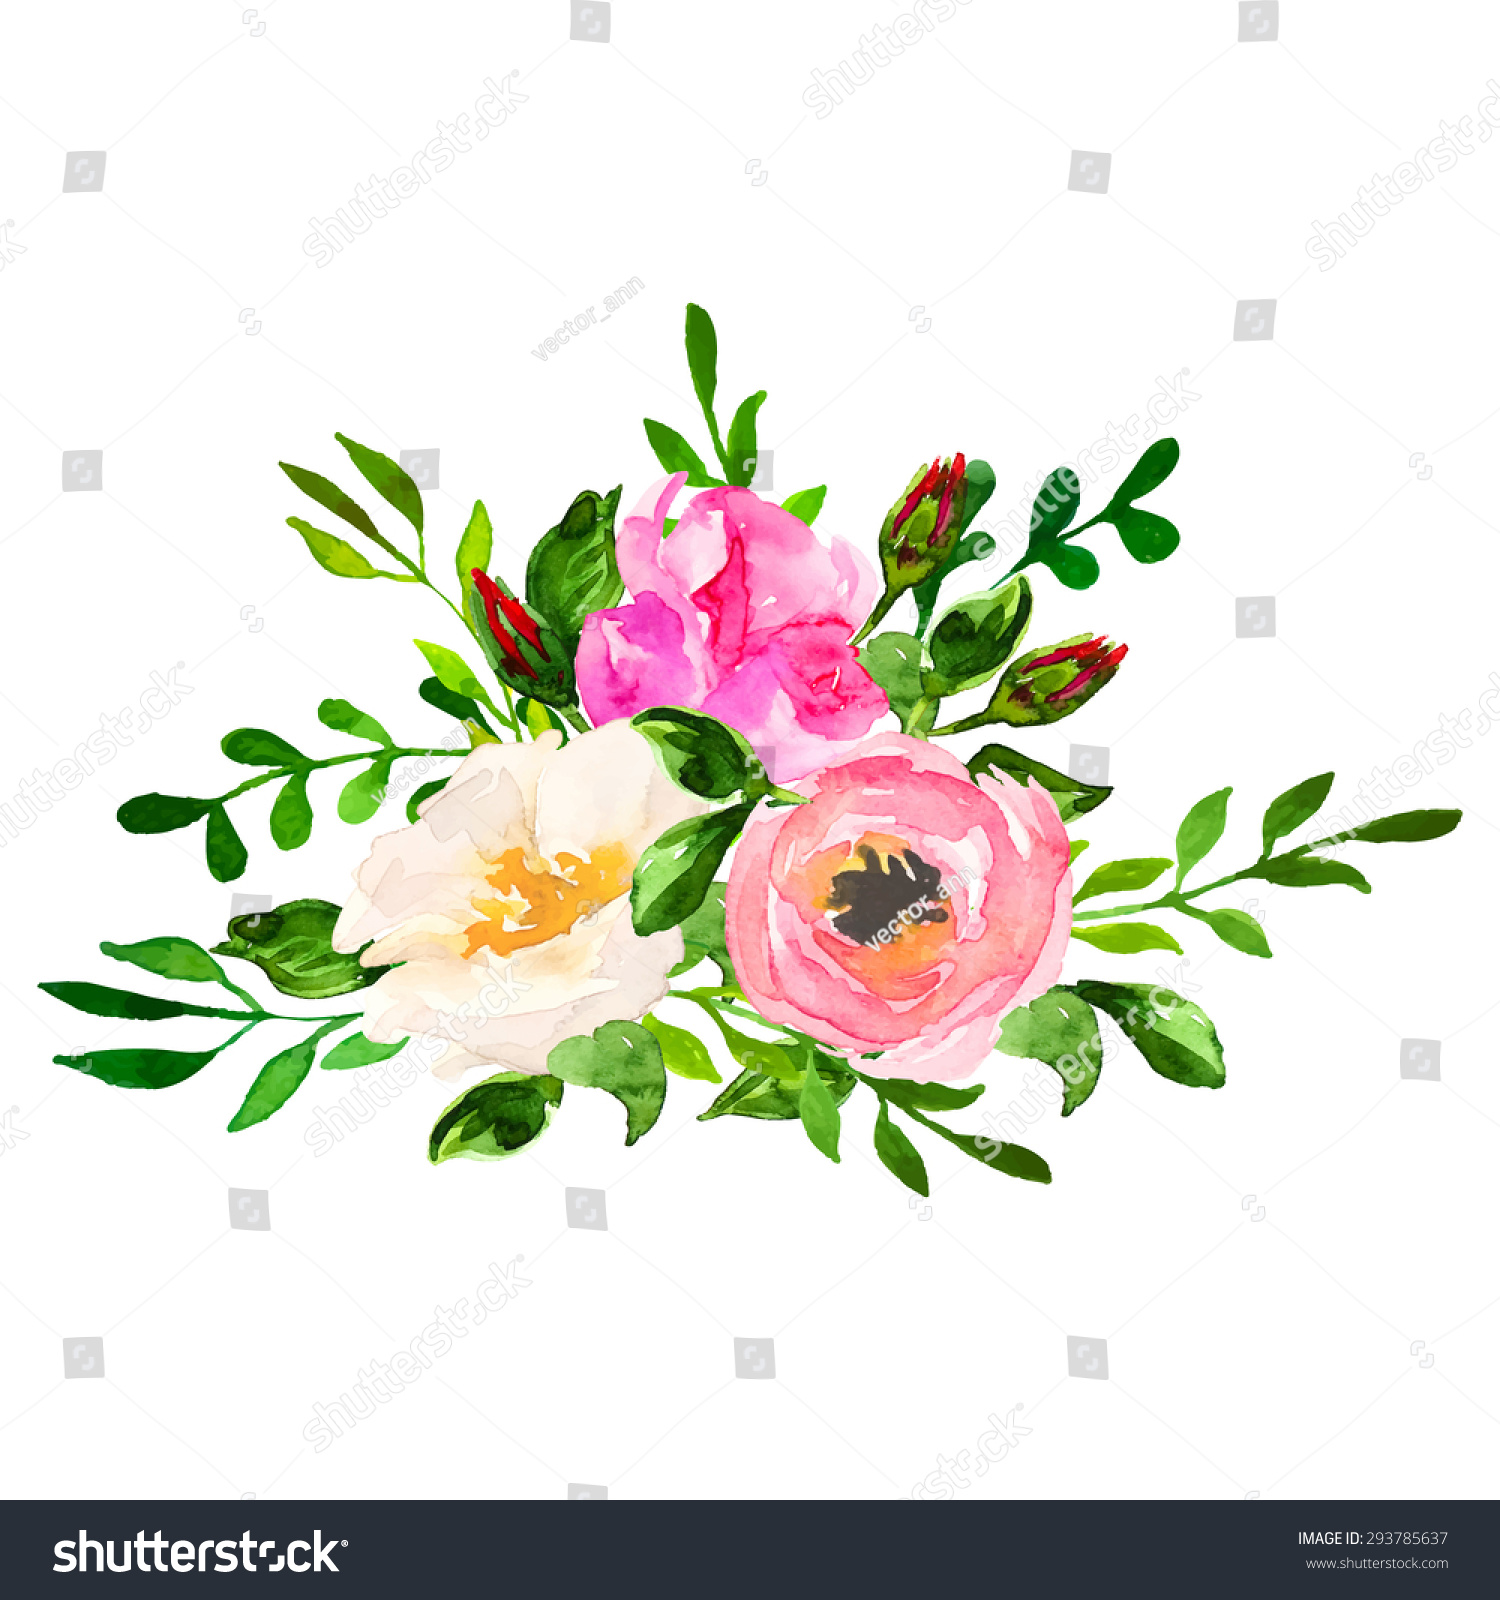 Beautiful Floral Hand Drawn Watercolor Bouquet Stock Vector 293785637 Shutterstock